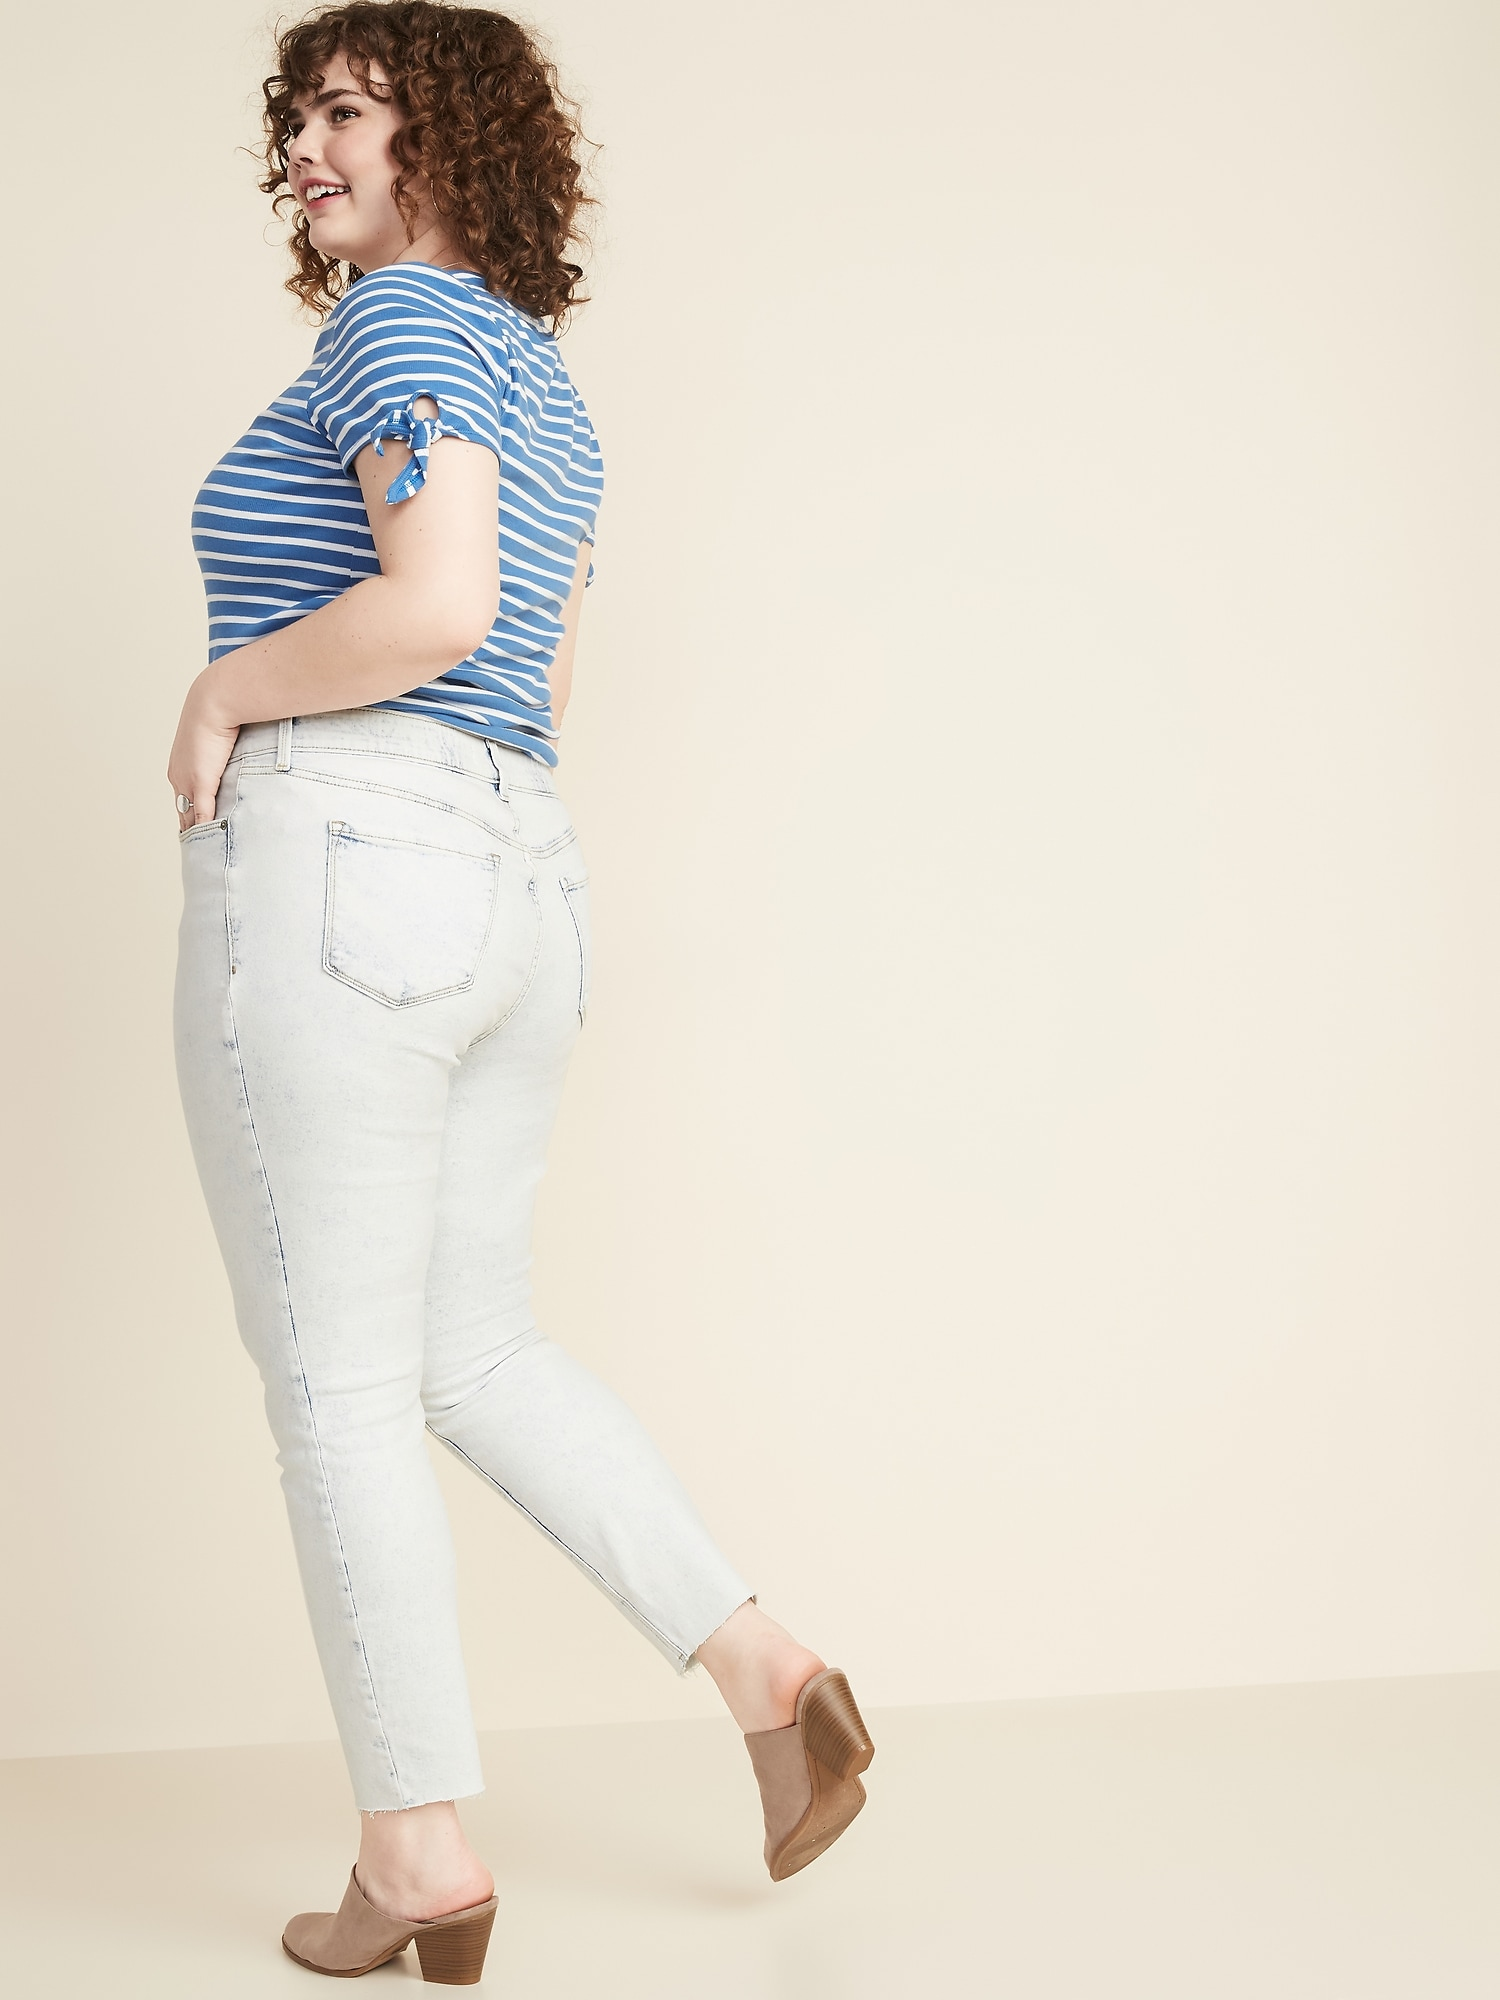 19a3bba959b8d4 High-Rise Secret-Slim Pockets + Waistband Plus-Size Rockstar Frayed-Hem  Jeans